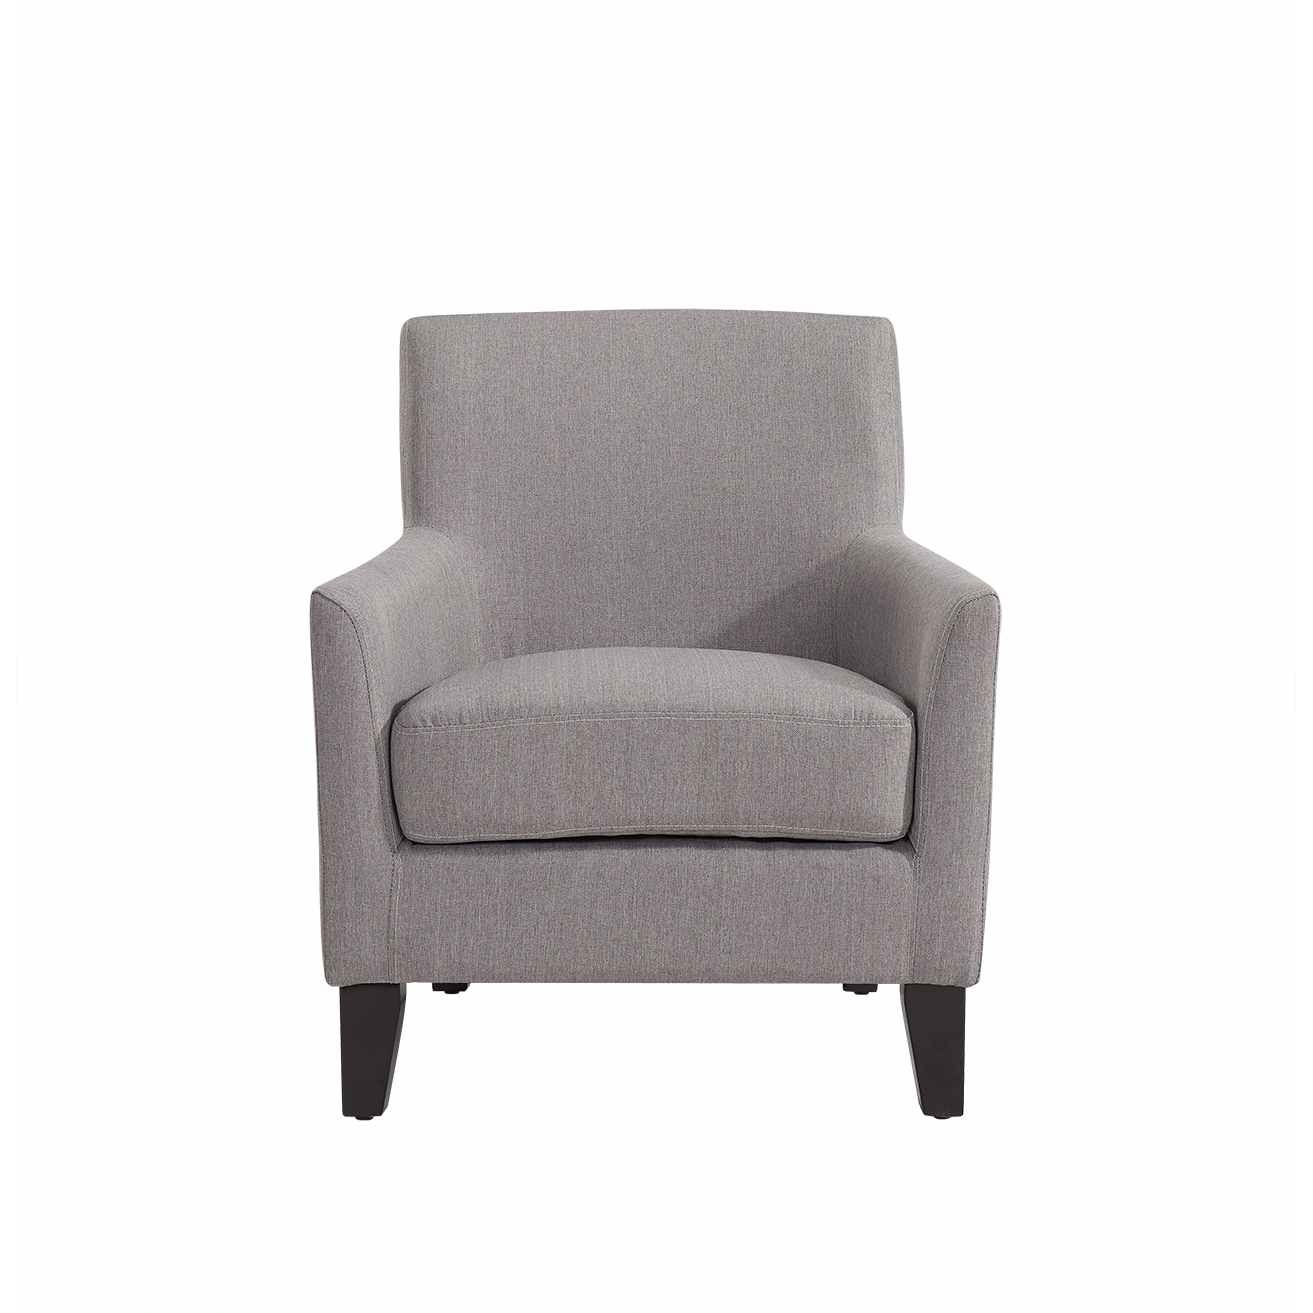 deco in paris fauteuil gris en tissu karl karl gris. Black Bedroom Furniture Sets. Home Design Ideas